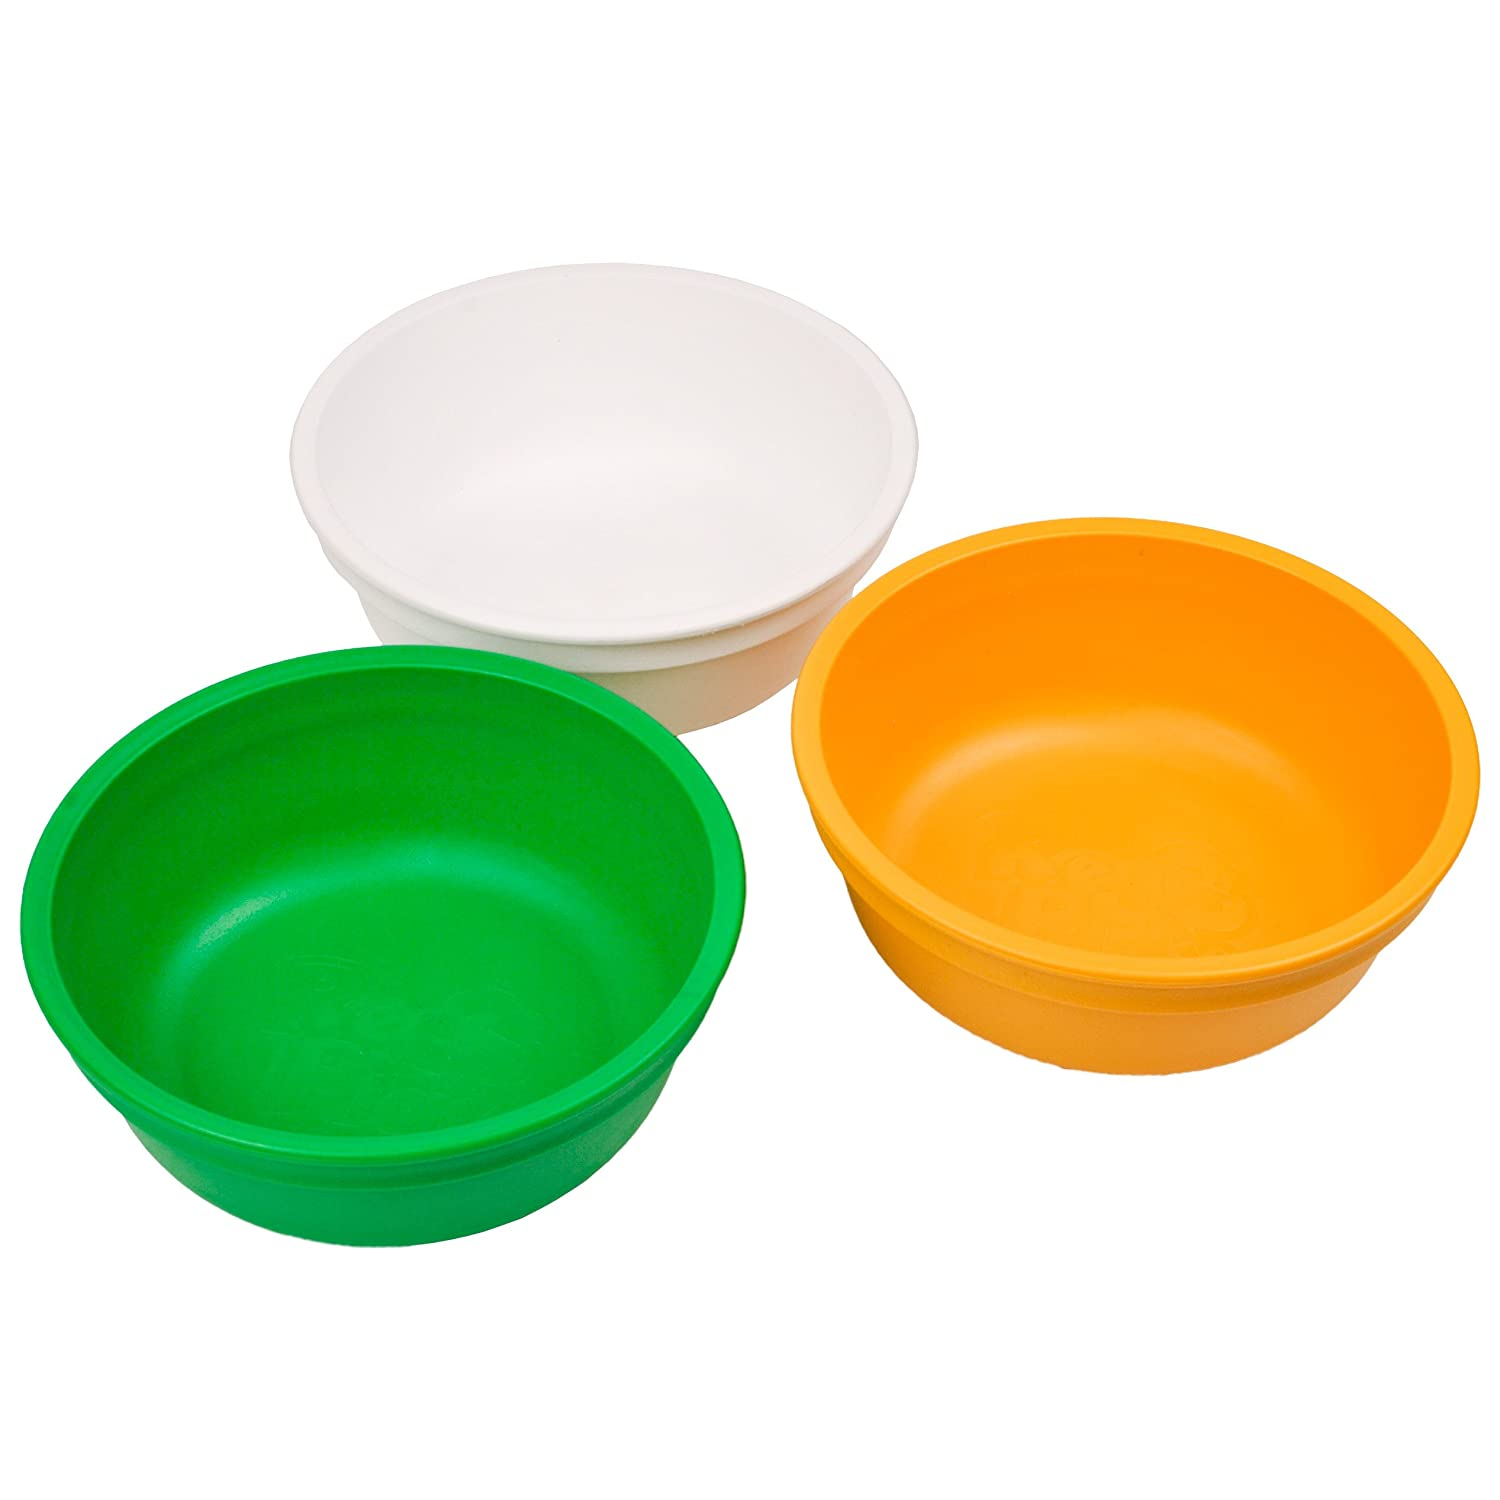 Re-Play Made in The USA 3pk Bowls for Easy Baby, Toddler, and Child Feeding - Bright Pink, Purple, Blush (Princess) Re-Think It